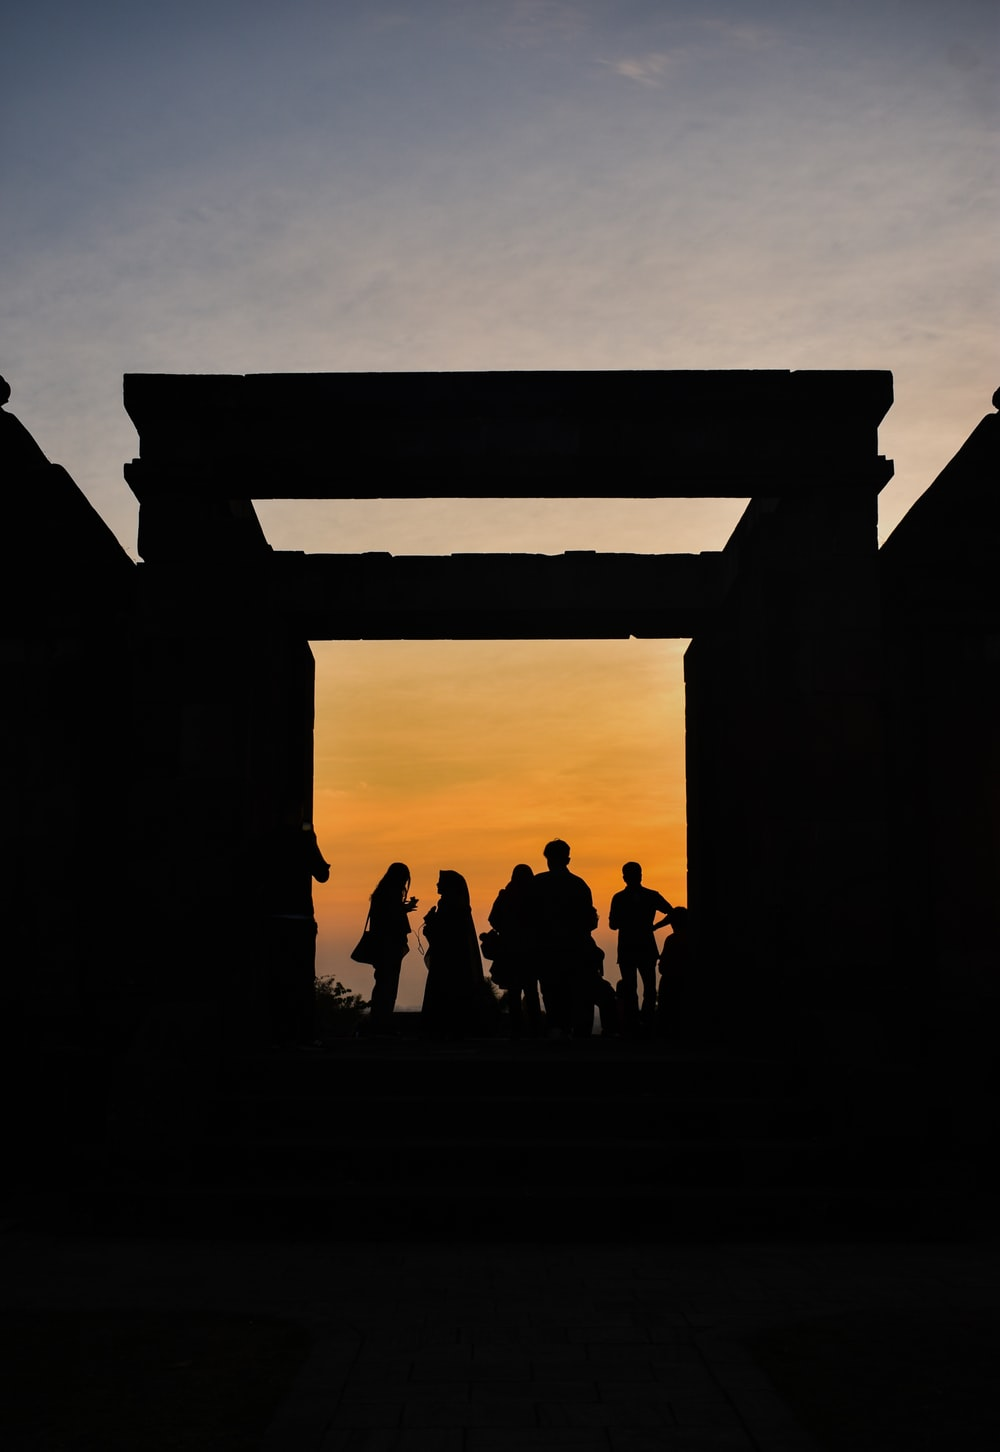 silhouette of group of men during sunset